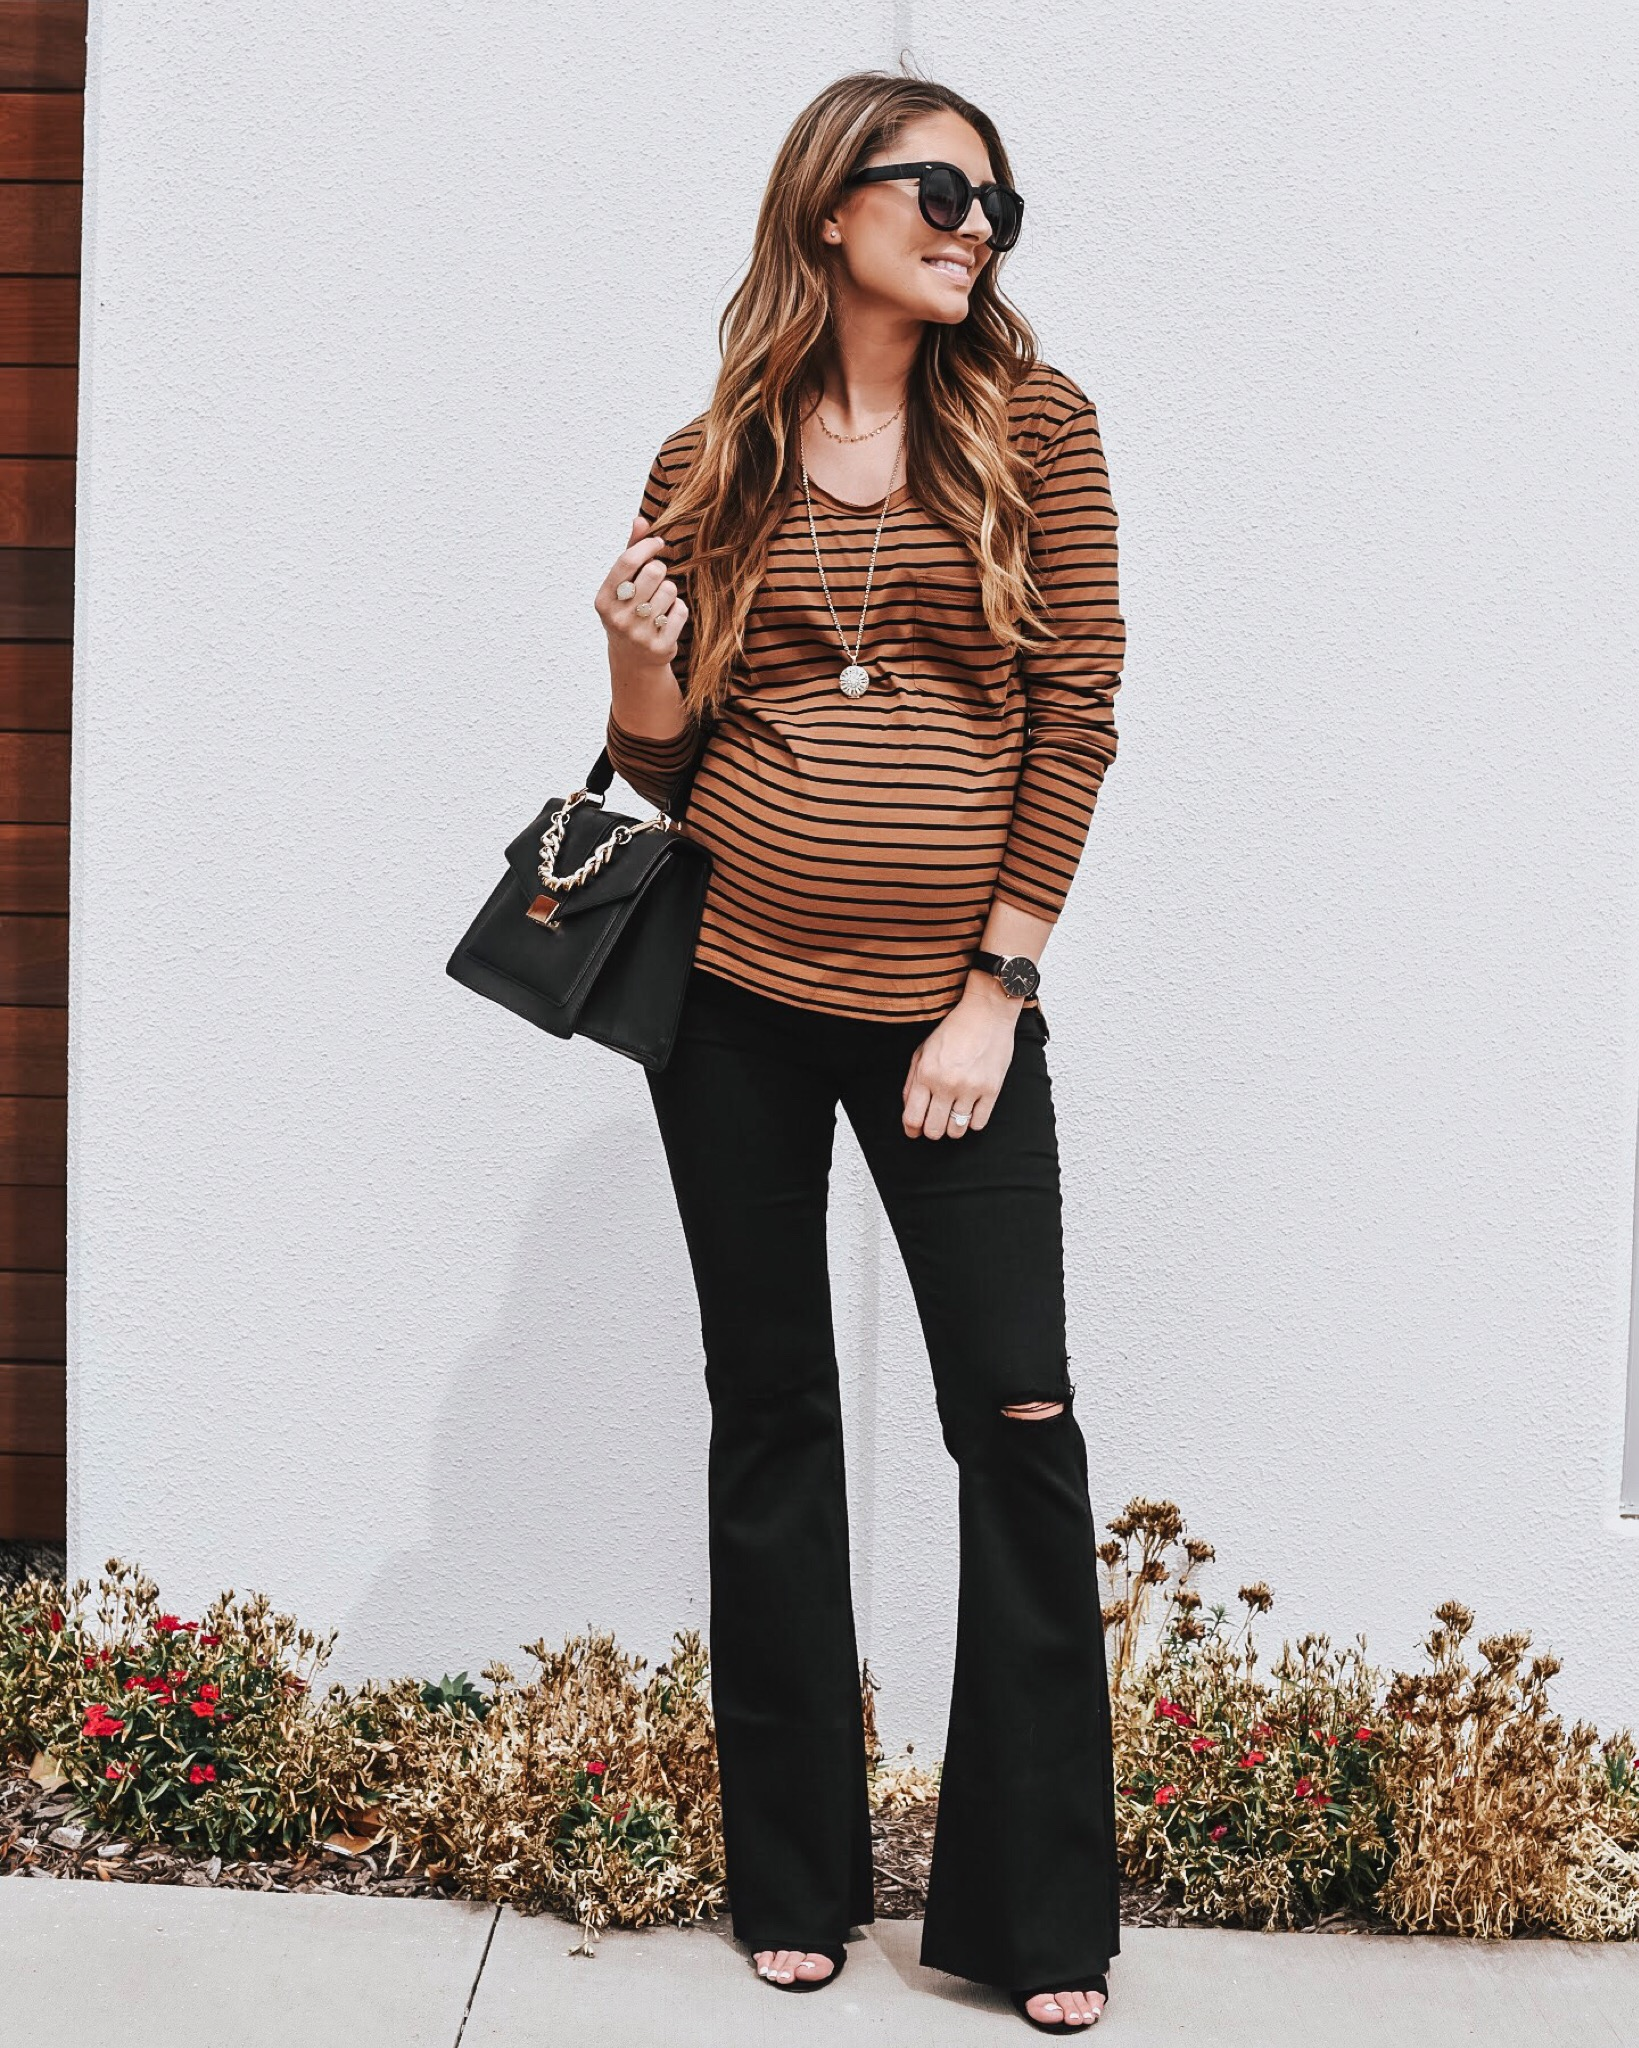 Comfy Striped Tee - Love these colors together for fall! Currently on sale for $17. Wearing a small!